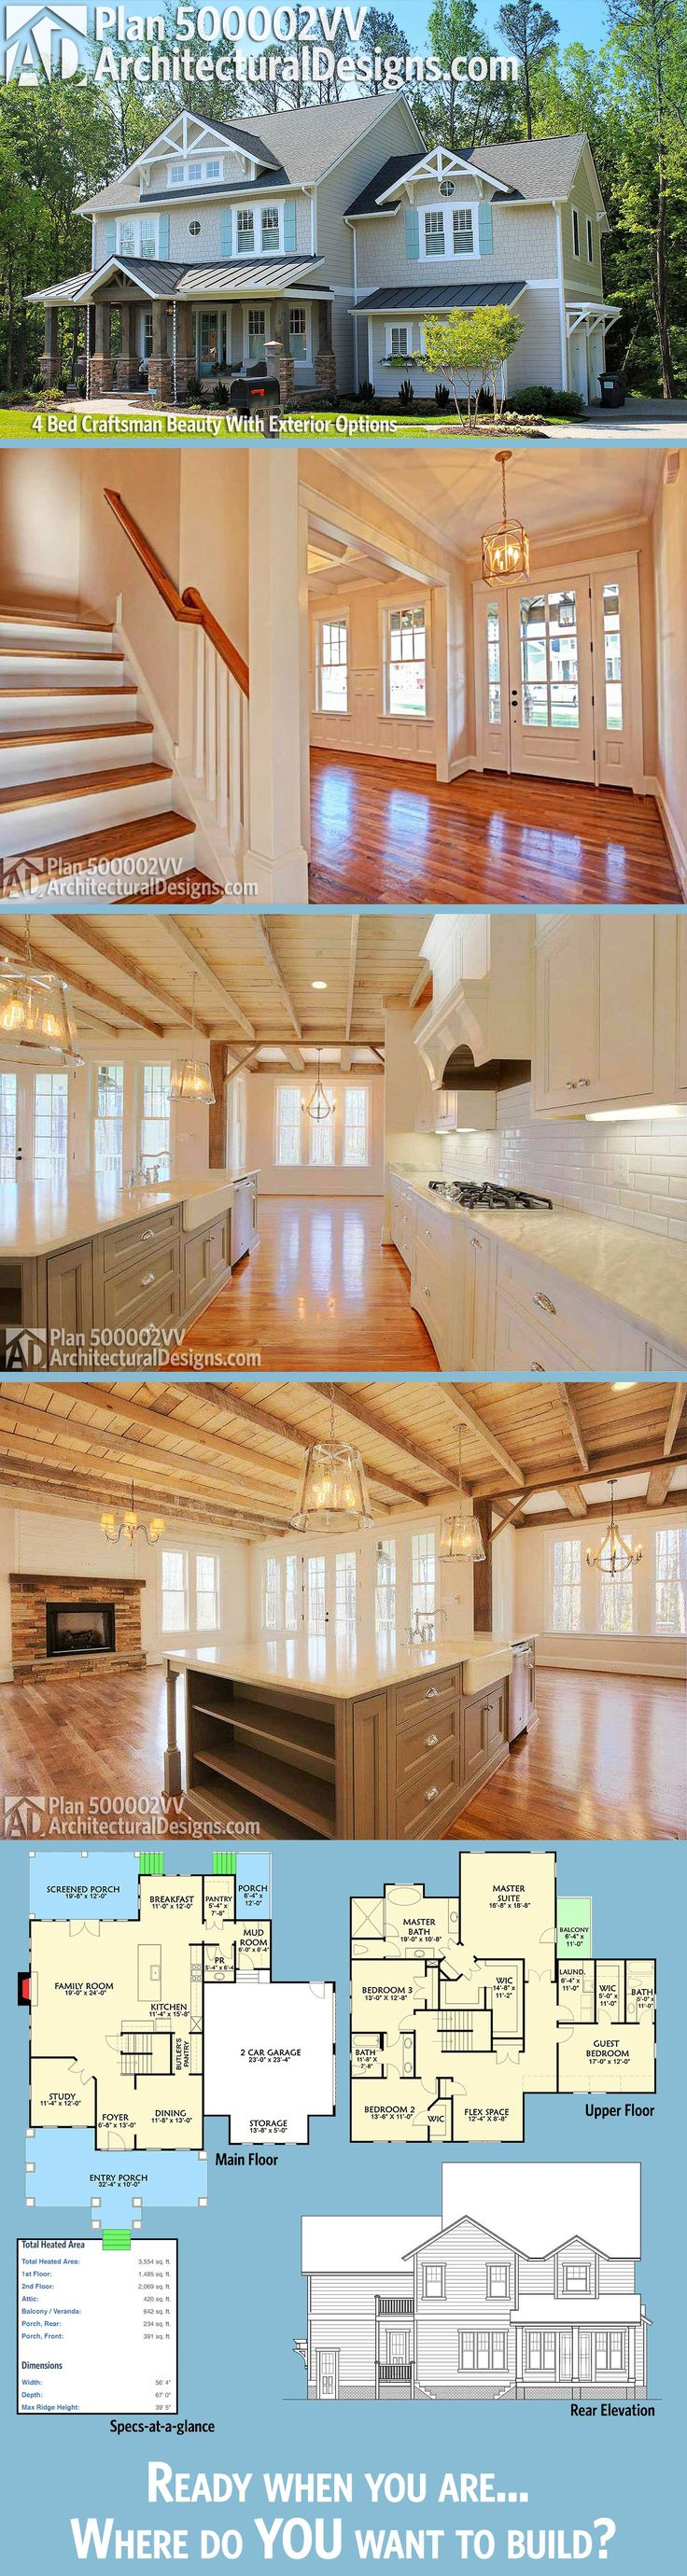 Craftsman homes for american dream builders fans zillow blog - Plan 500002vv 4 Bed Craftsman Beauty With Exterior Options